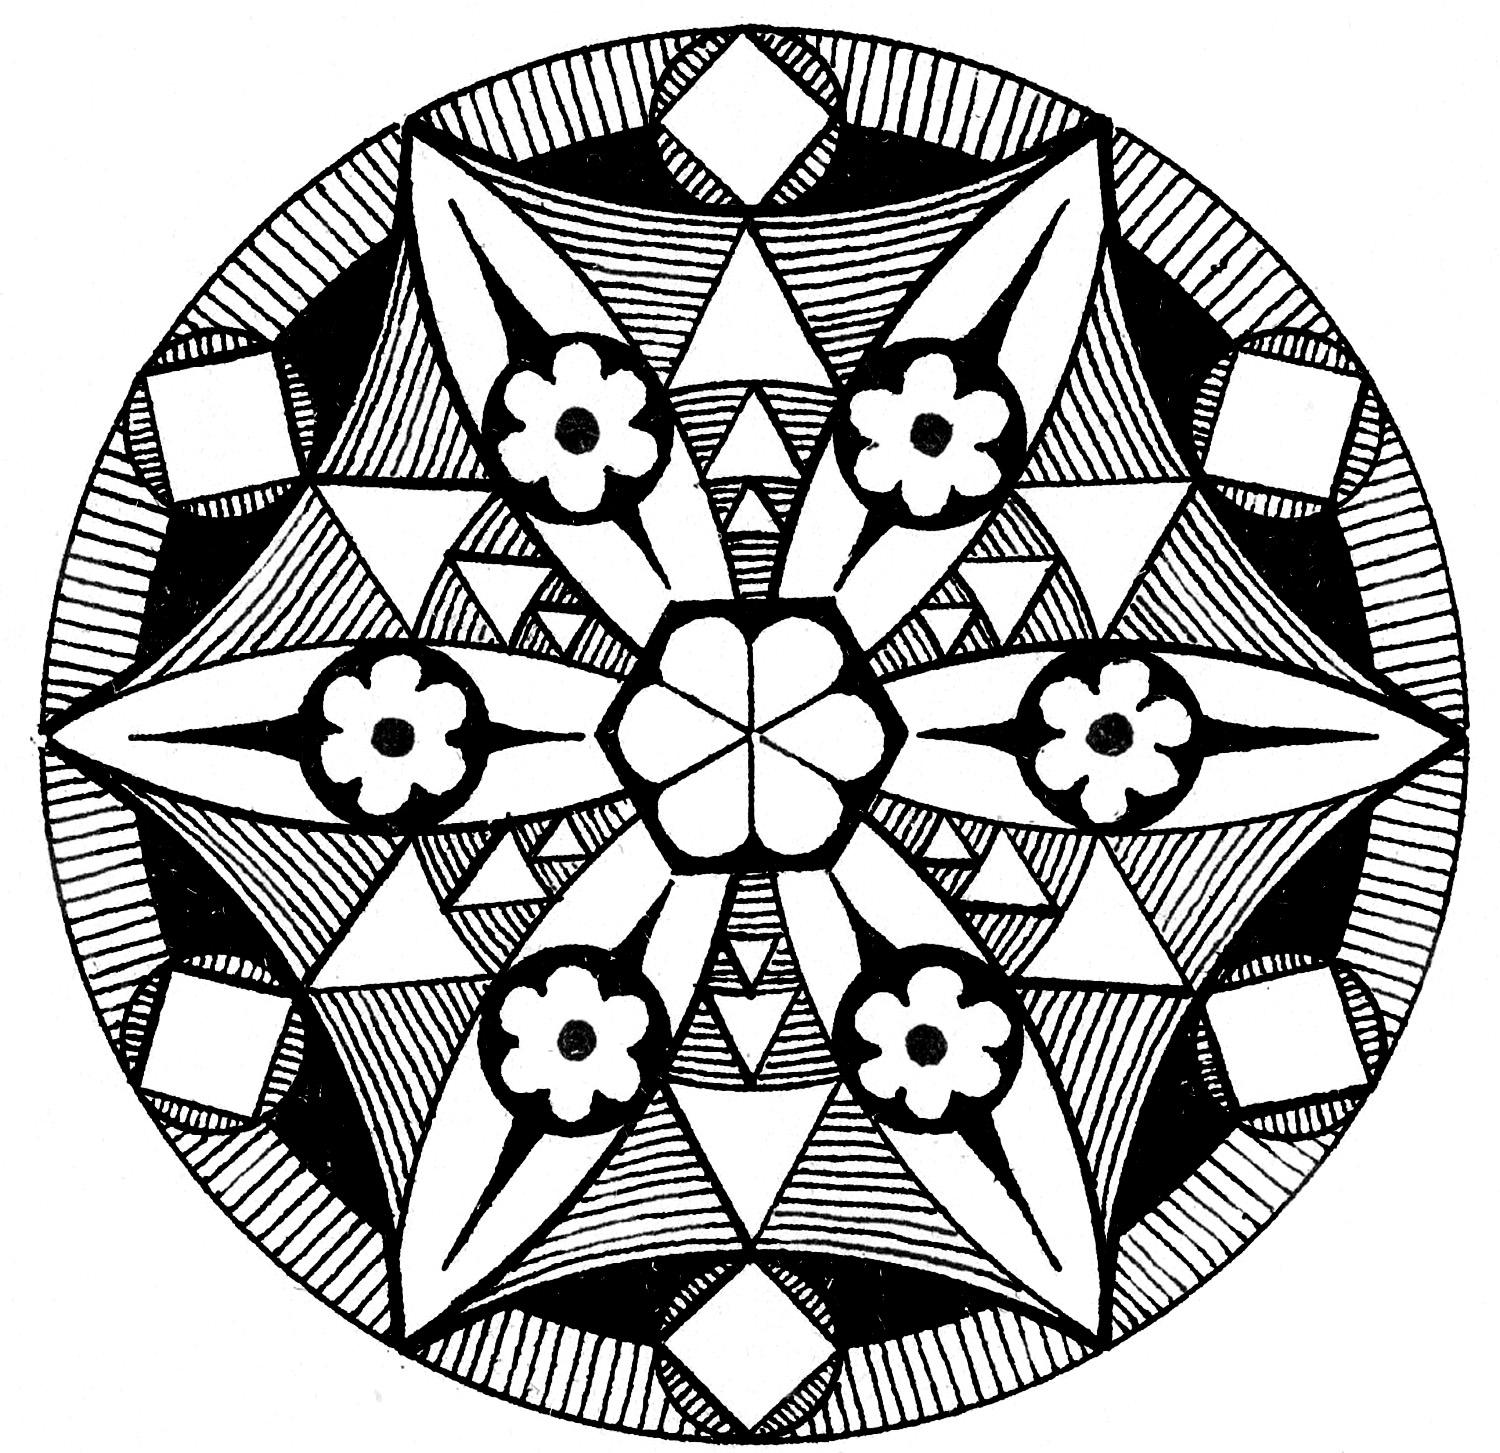 Black & White Medallion Graphic